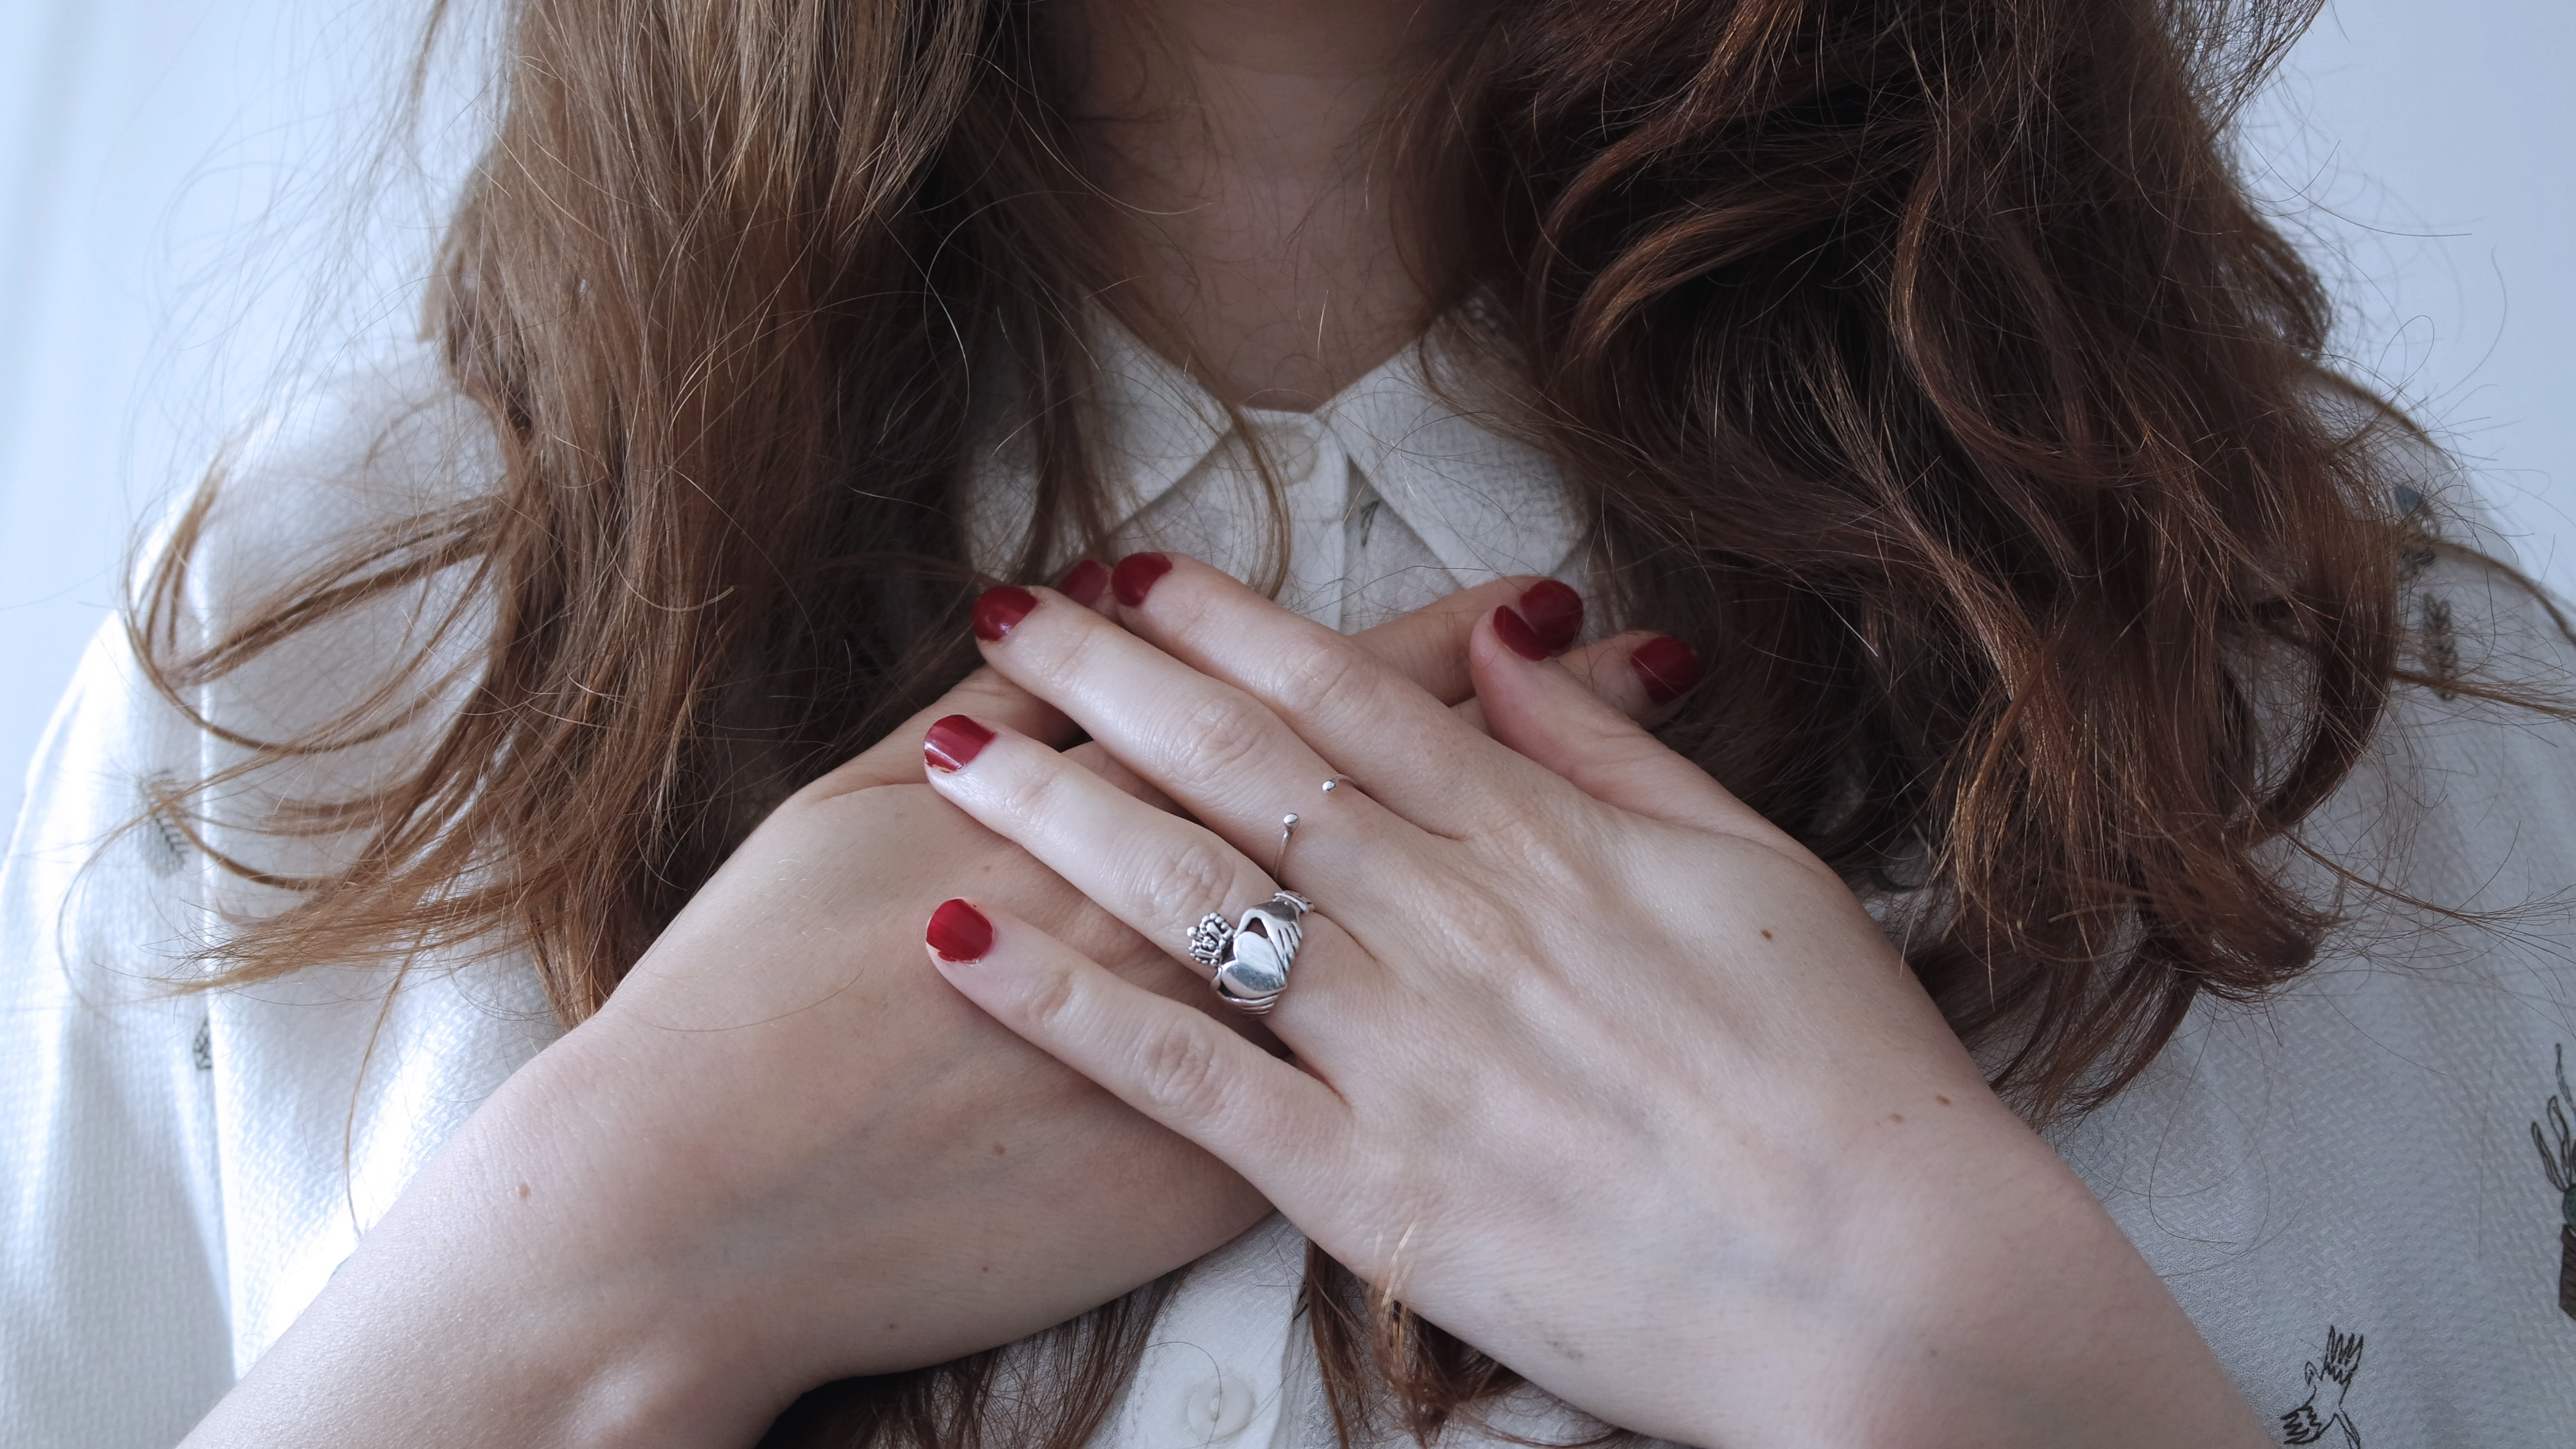 a person with long hair, red nails, and rings, holding their hands over the center of their chest